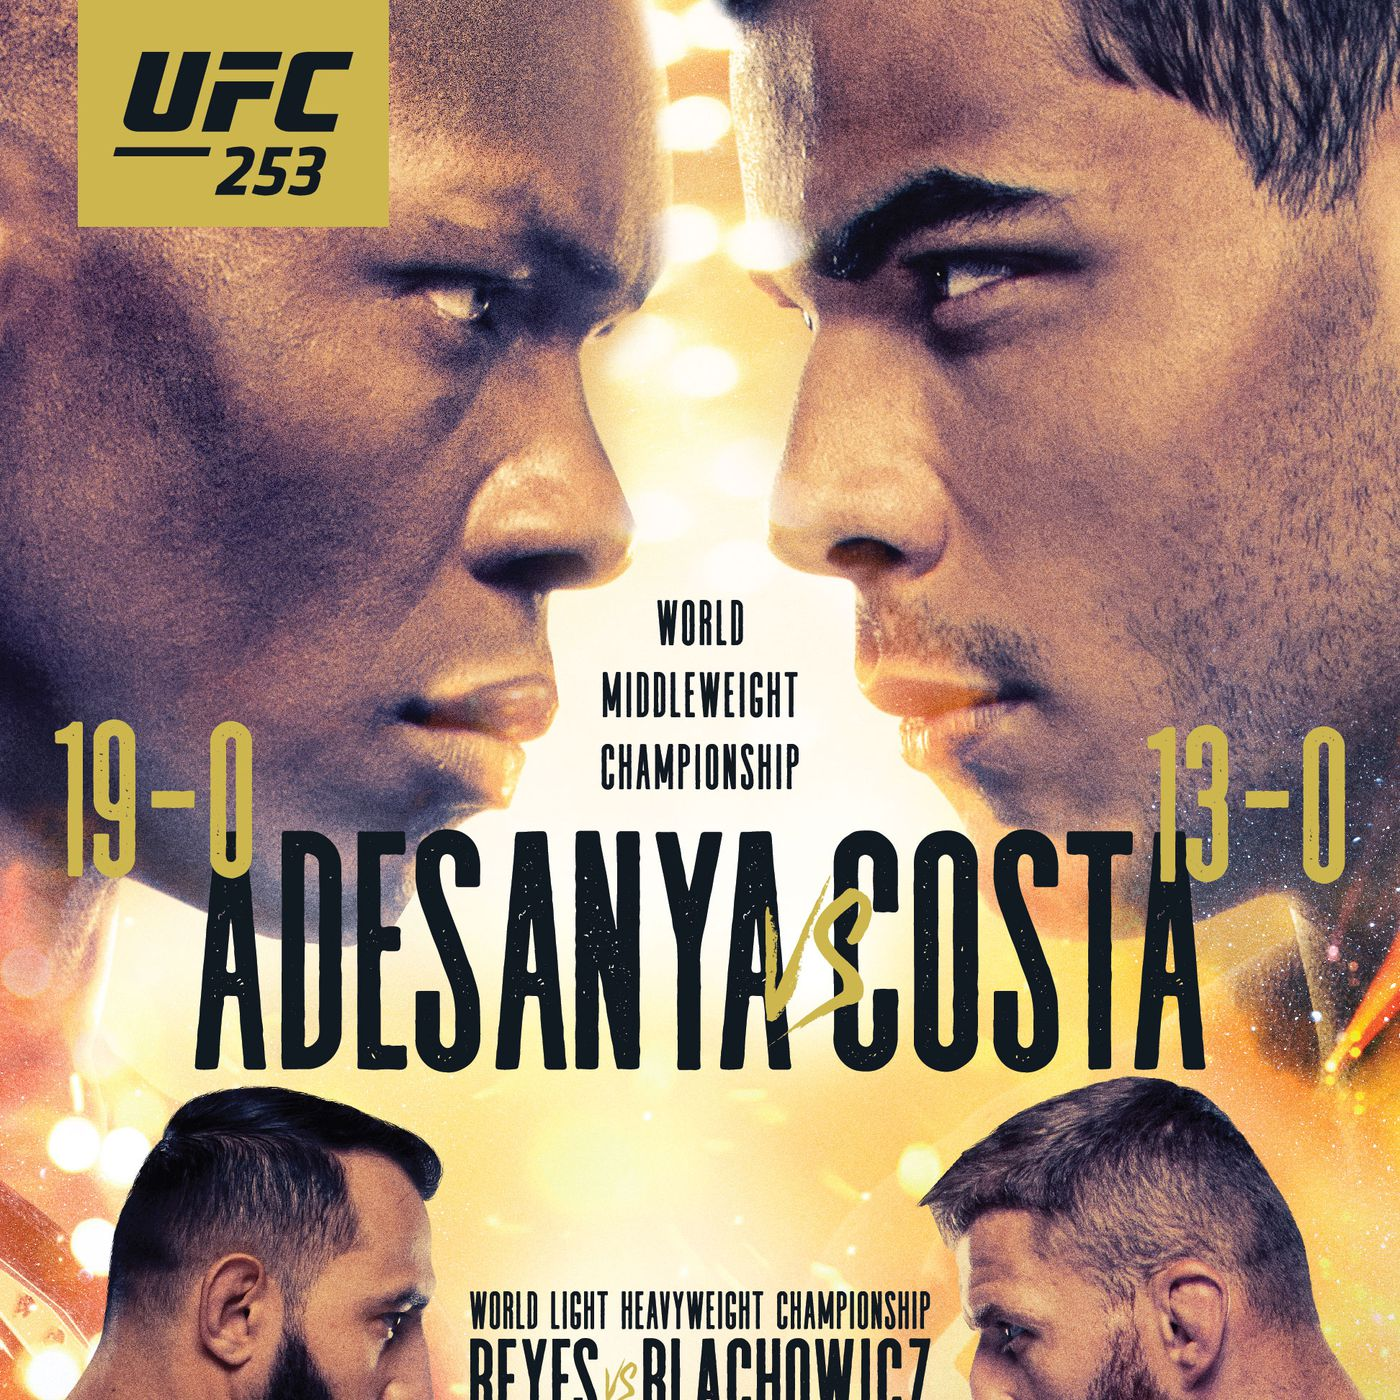 Pic Ufc 253 Poster Drops For Adesanya Vs Costa On Sept 26 On Fight Island Mmamania Com